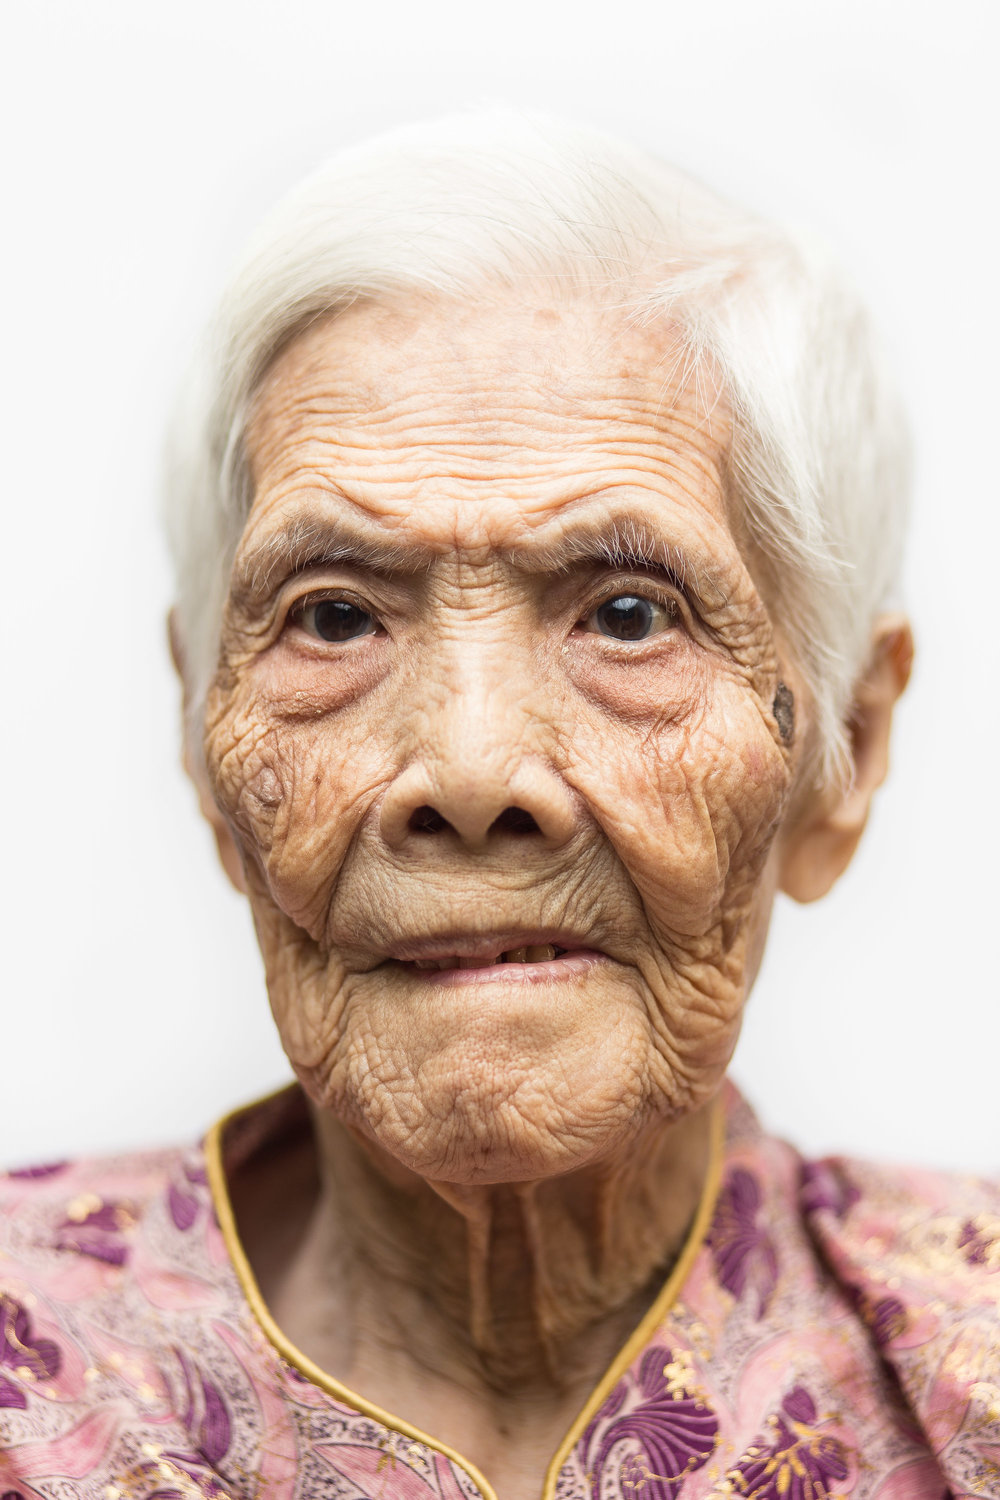 singapore-photographer-centenarians-dukenus-care-zz-1-2.jpg